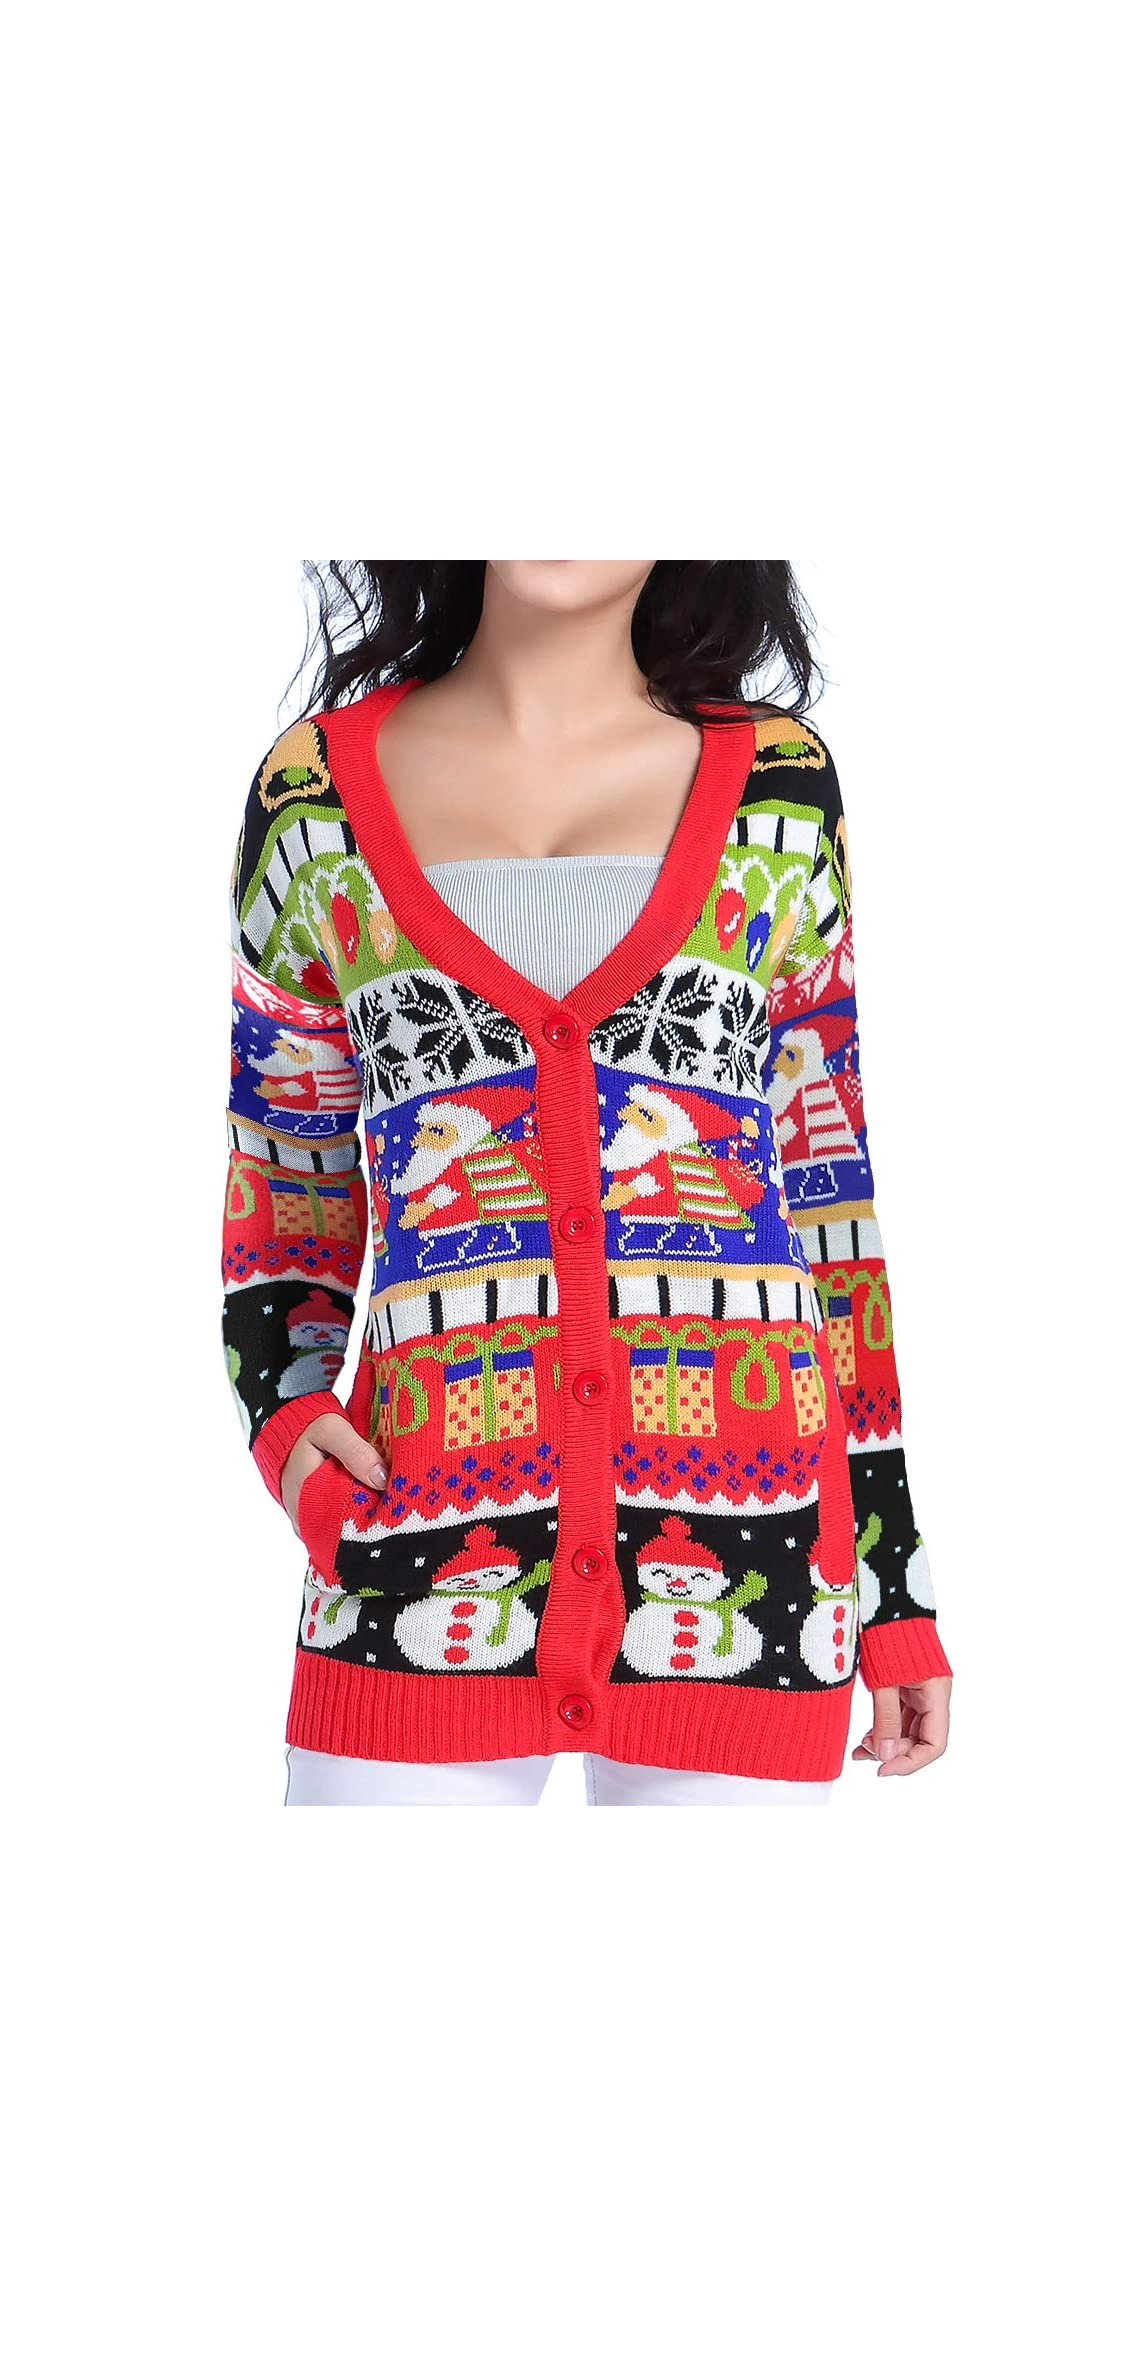 Ugly Christmas Sweater, Women Girl Vintage Knit Xmas Sweater